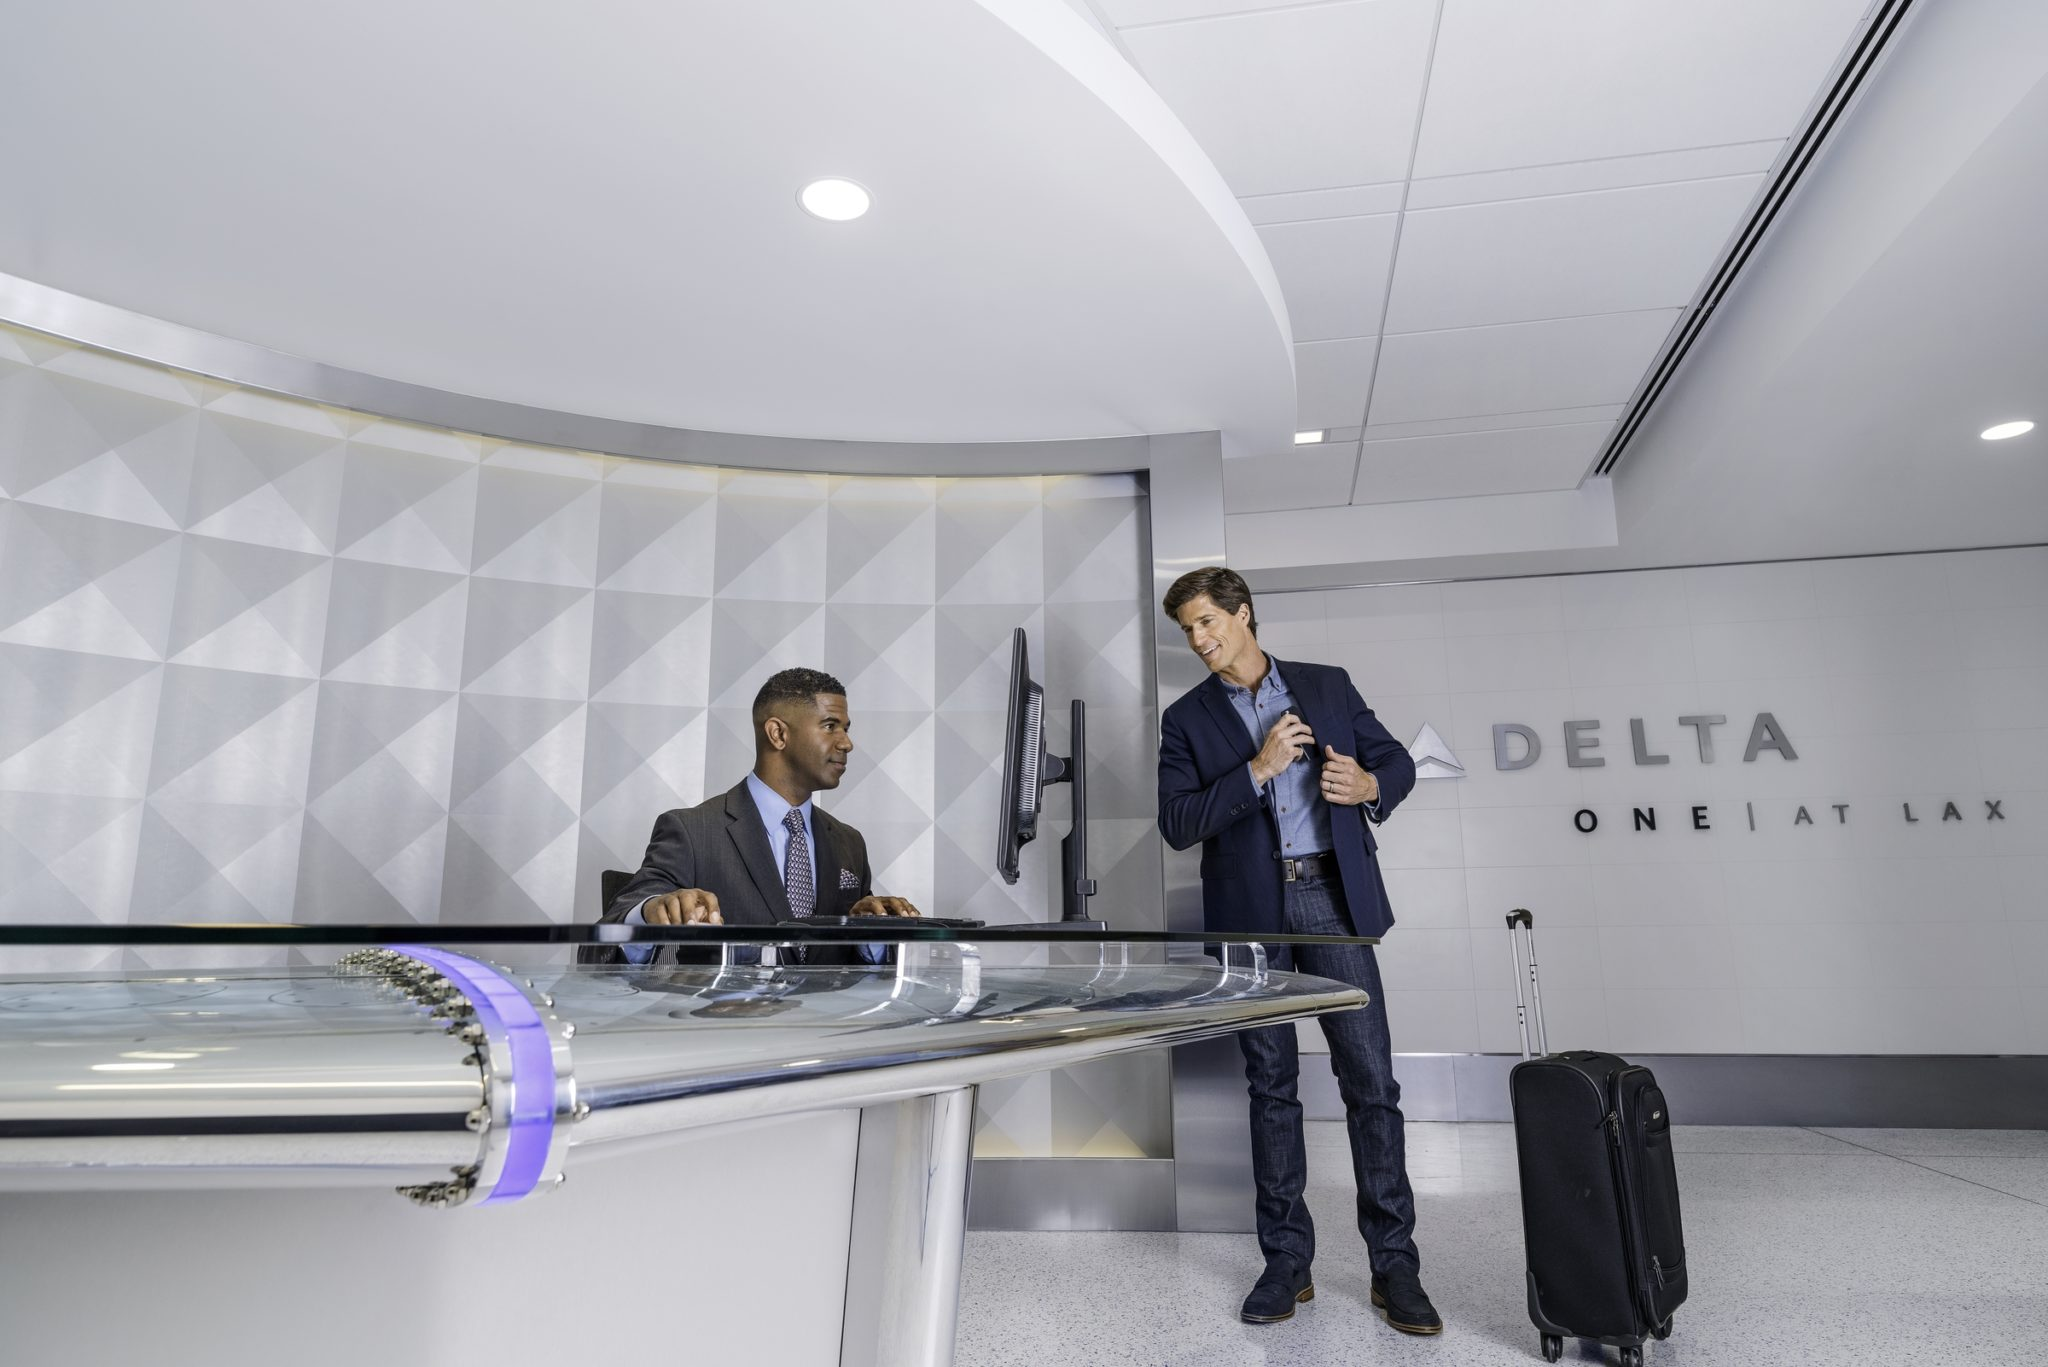 Delta-also-offers-an-exclusive-fast-track-entry-at-LAX-—-will-only-the-most-exclusive-celebs-be-using-the-new-terminal_-—Delta-image